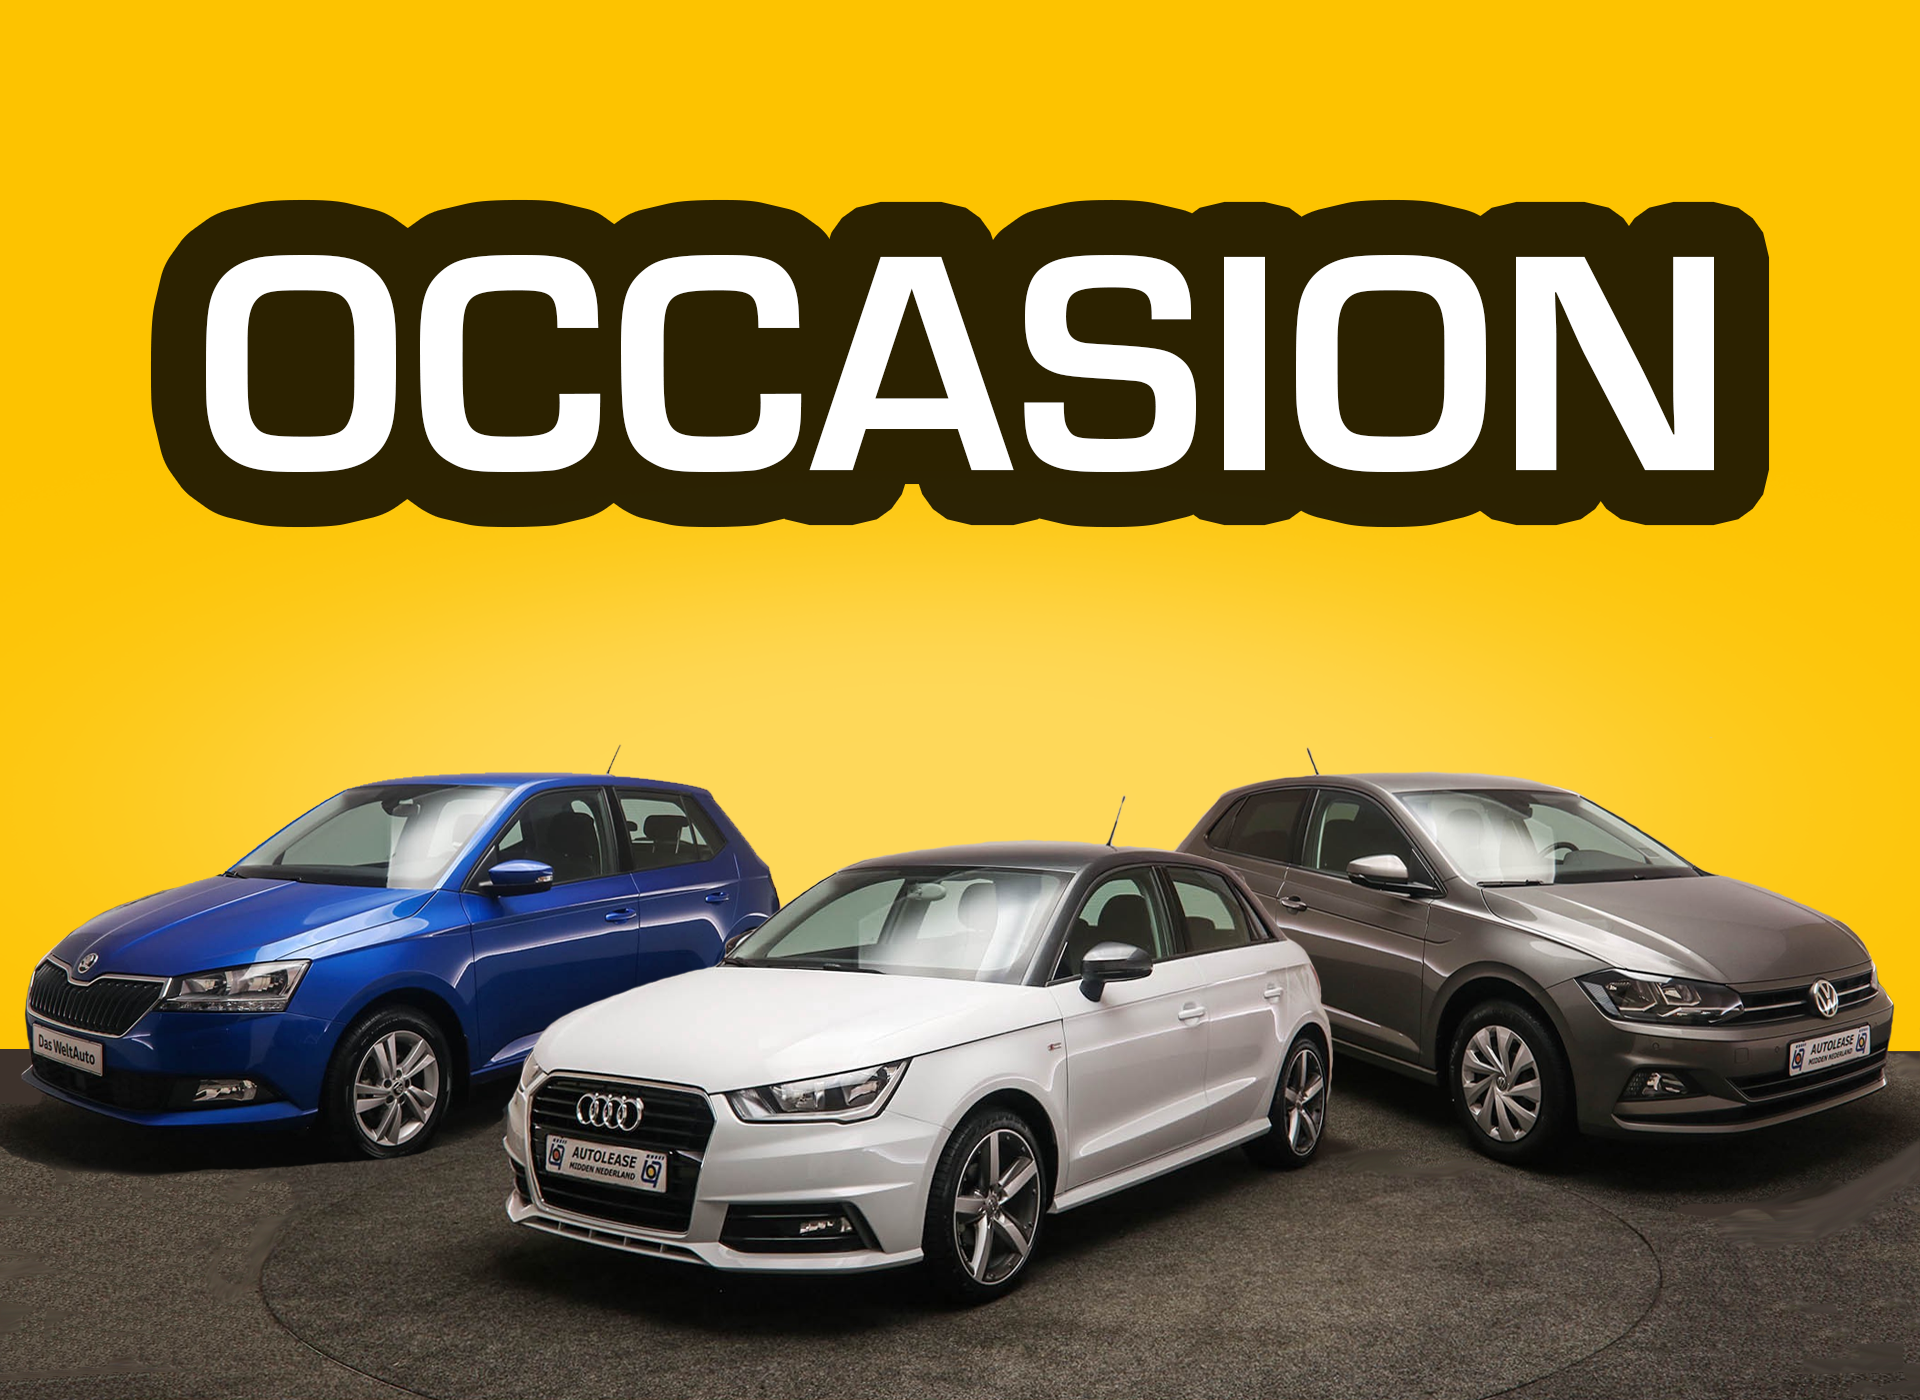 Lease een occasion! Ontdek ALMN Private Lease